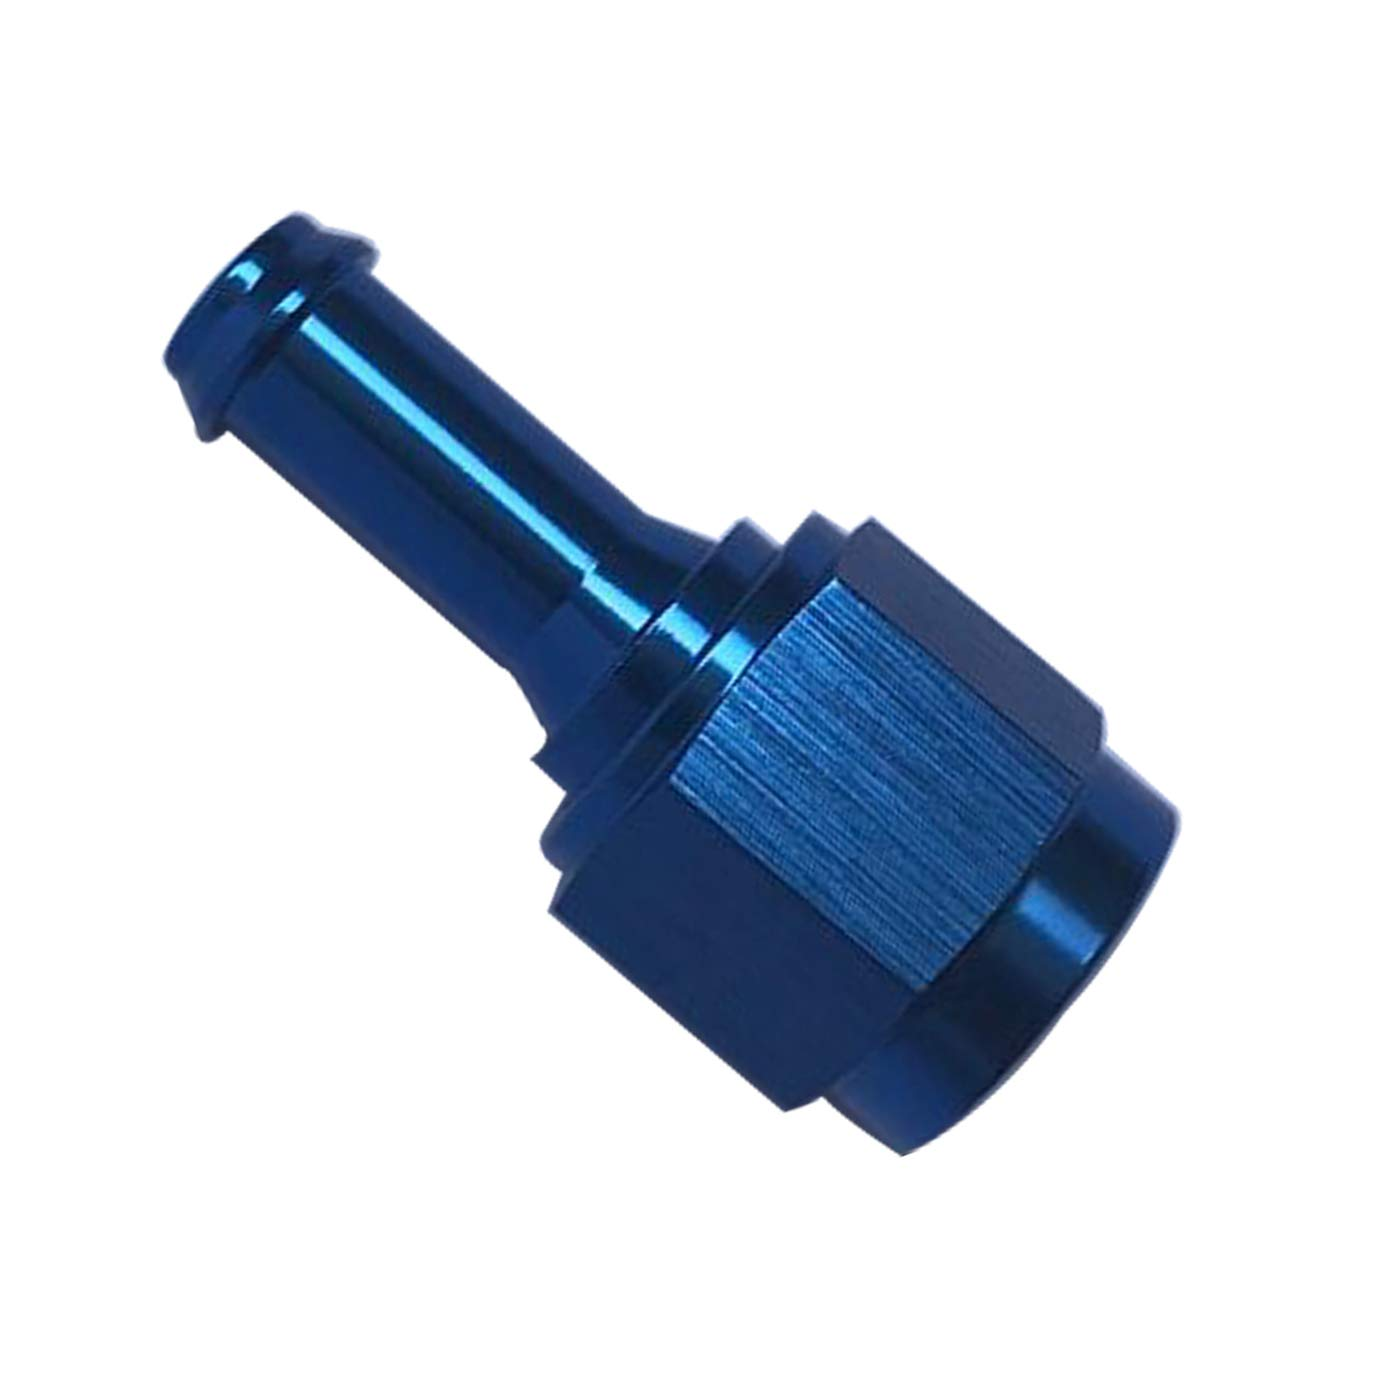 Female 8AN AN8 To 1//2 Barb 45 Degree Swivel Hose Fitting Aluminum Hose Barb Fuel Line Adapter Black Anodized